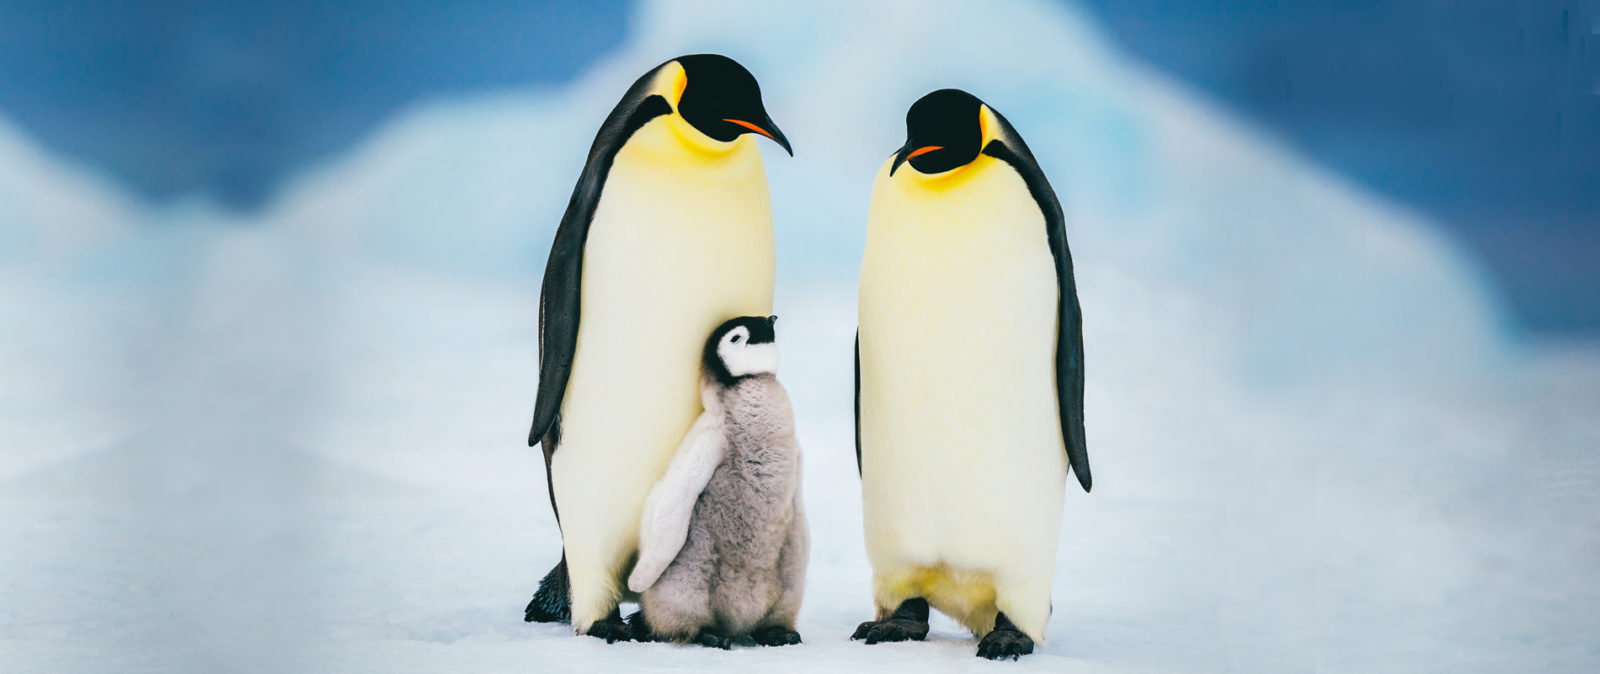 An Emperor penguin chick cuddles up to its parents during a perfect day in Antarctica.